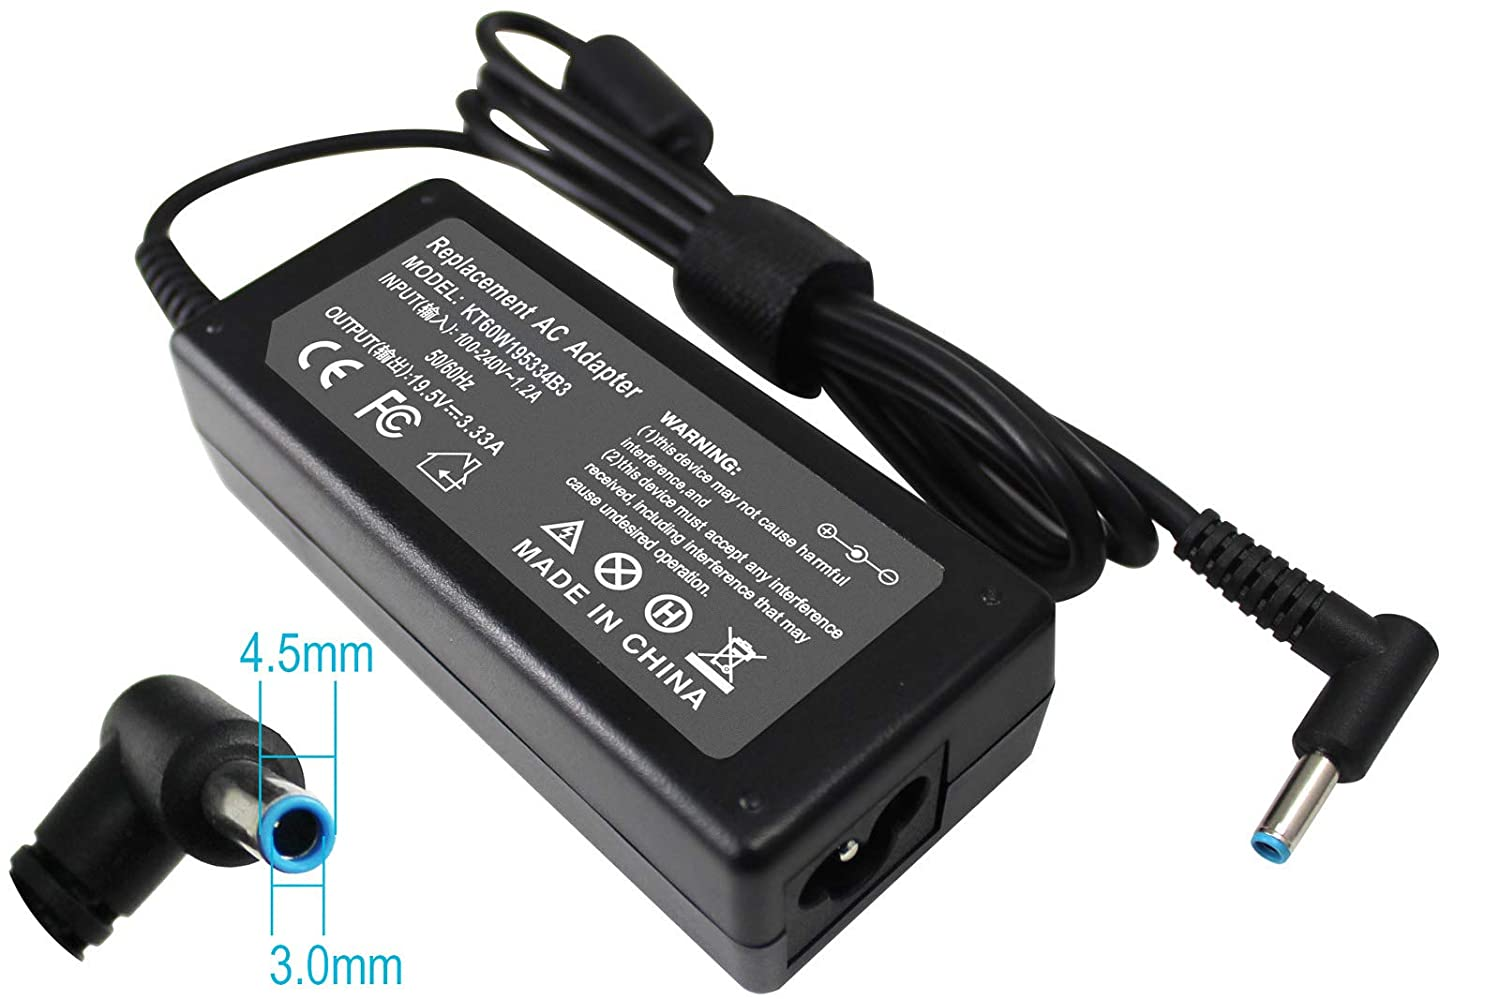 Gomarty 19.5V 3.33A PPP09C Replacement AC Adapter for HP Chromebook 14-q010nr 14-q020nr, Compatible Part Numbers:PA-1650-34HE PPP009A AD9043-022G2 709985-001 710412-001 709985-002